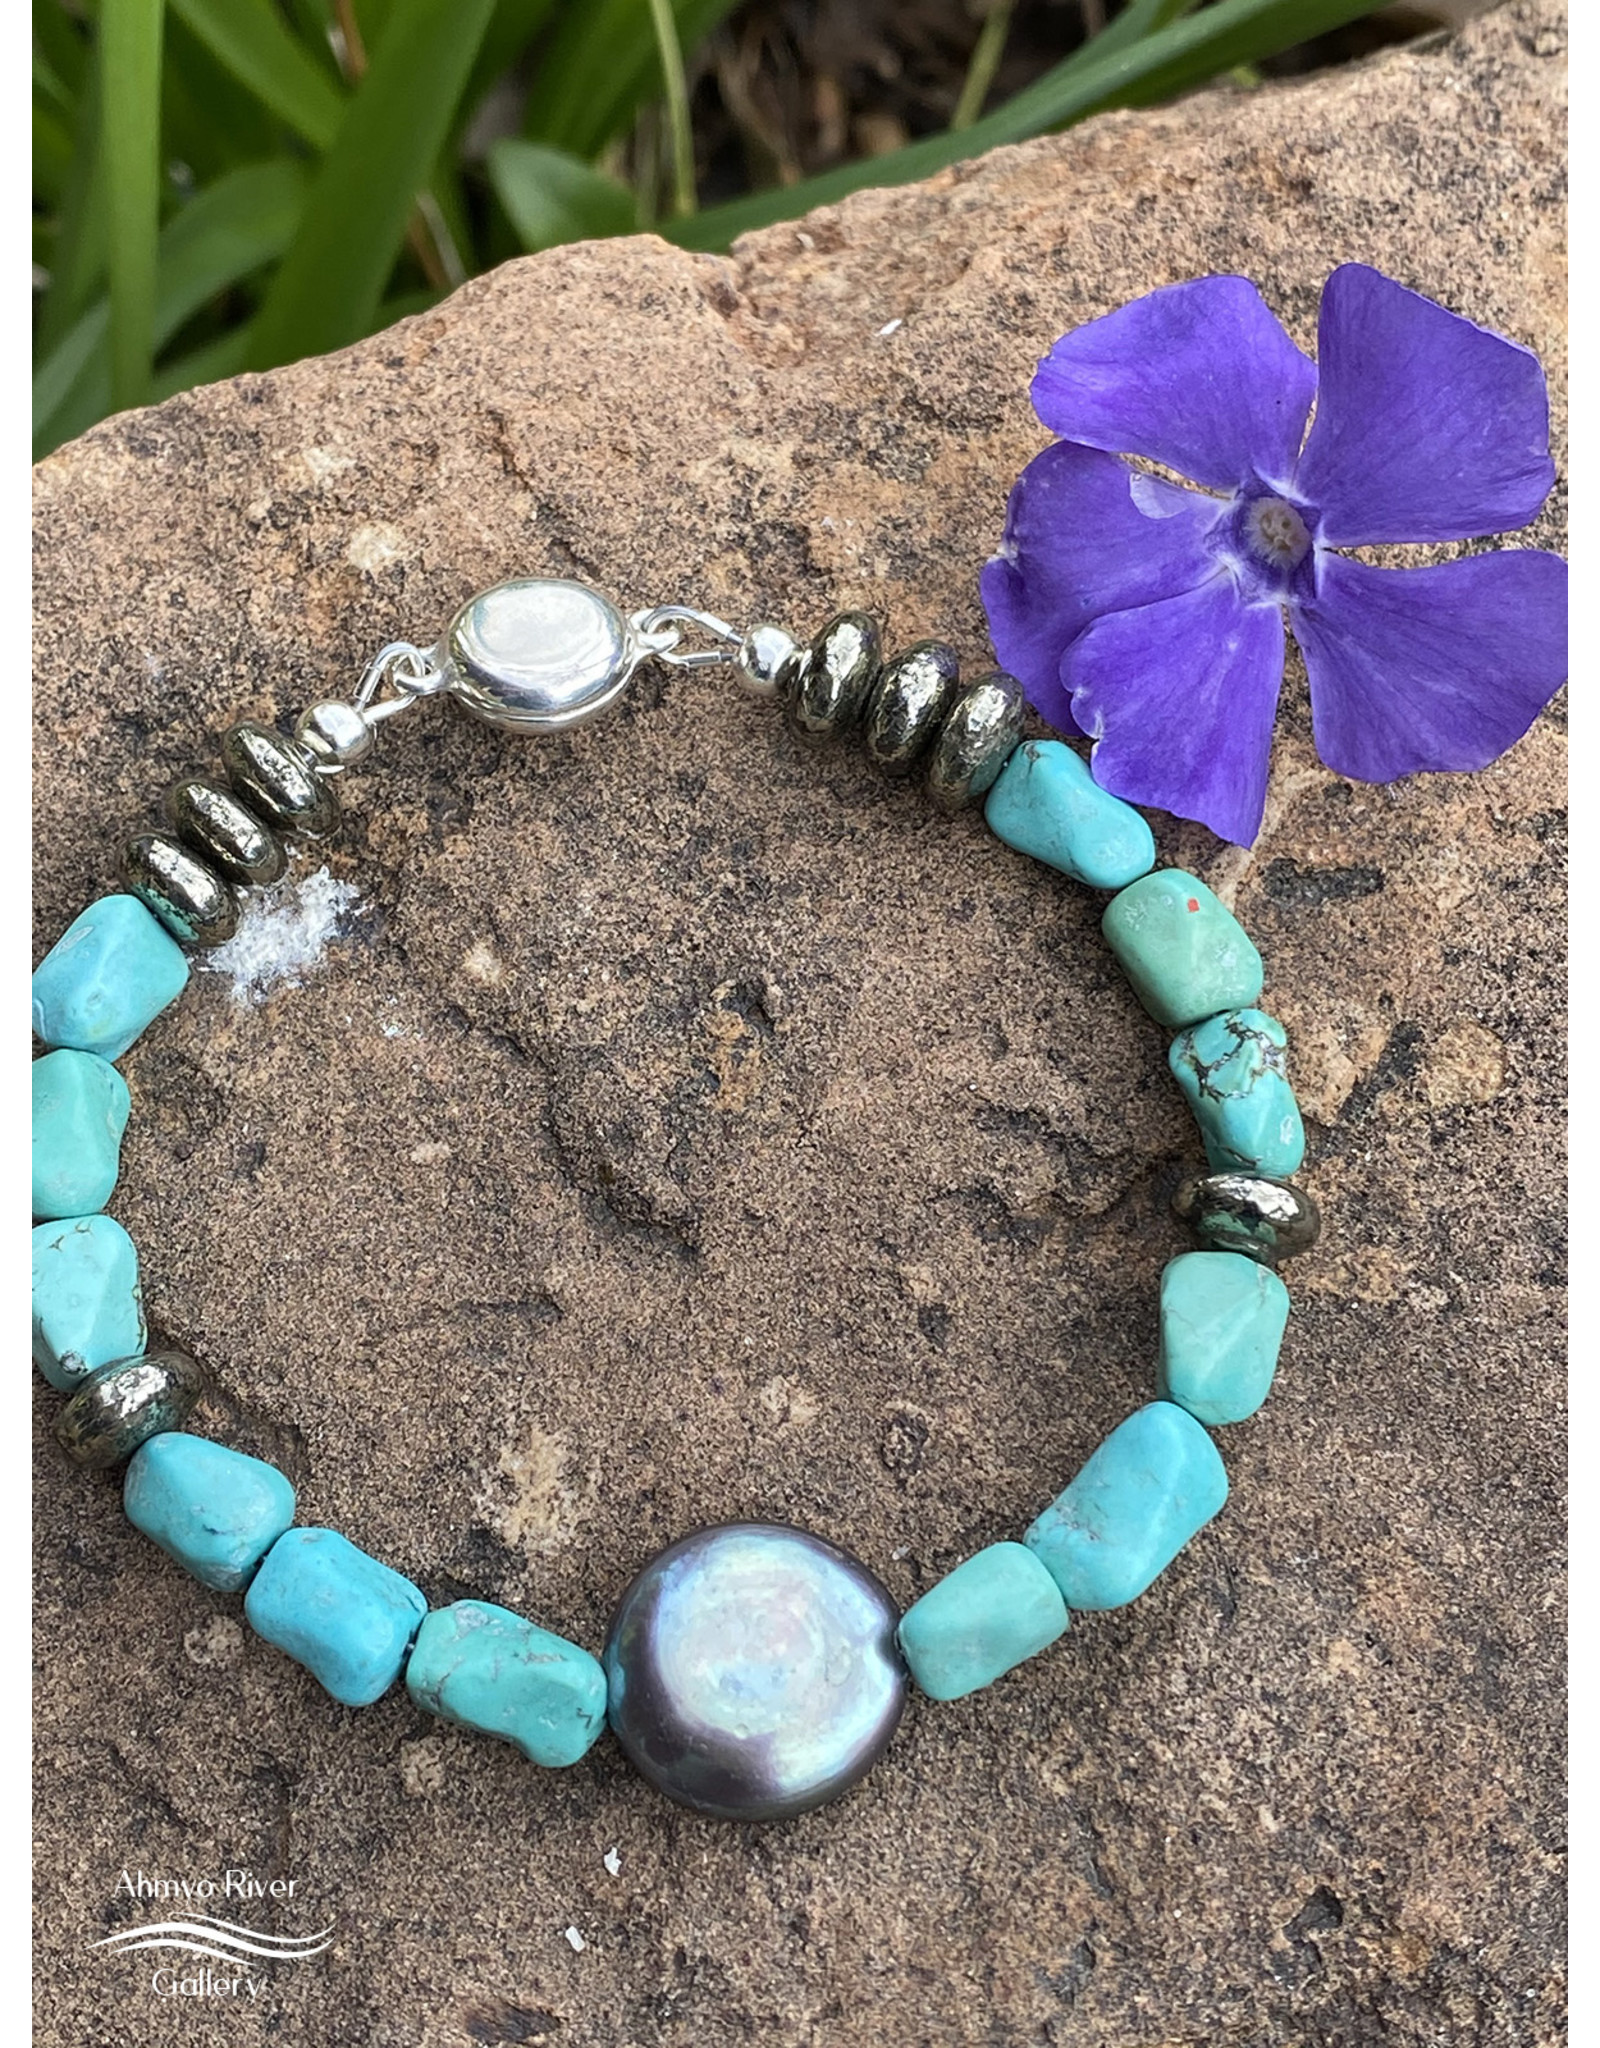 Annette Colby - Jeweler Coin Pearl, Turquoise, Pyrite Bracelet, Sterling Silver - Annette Colby